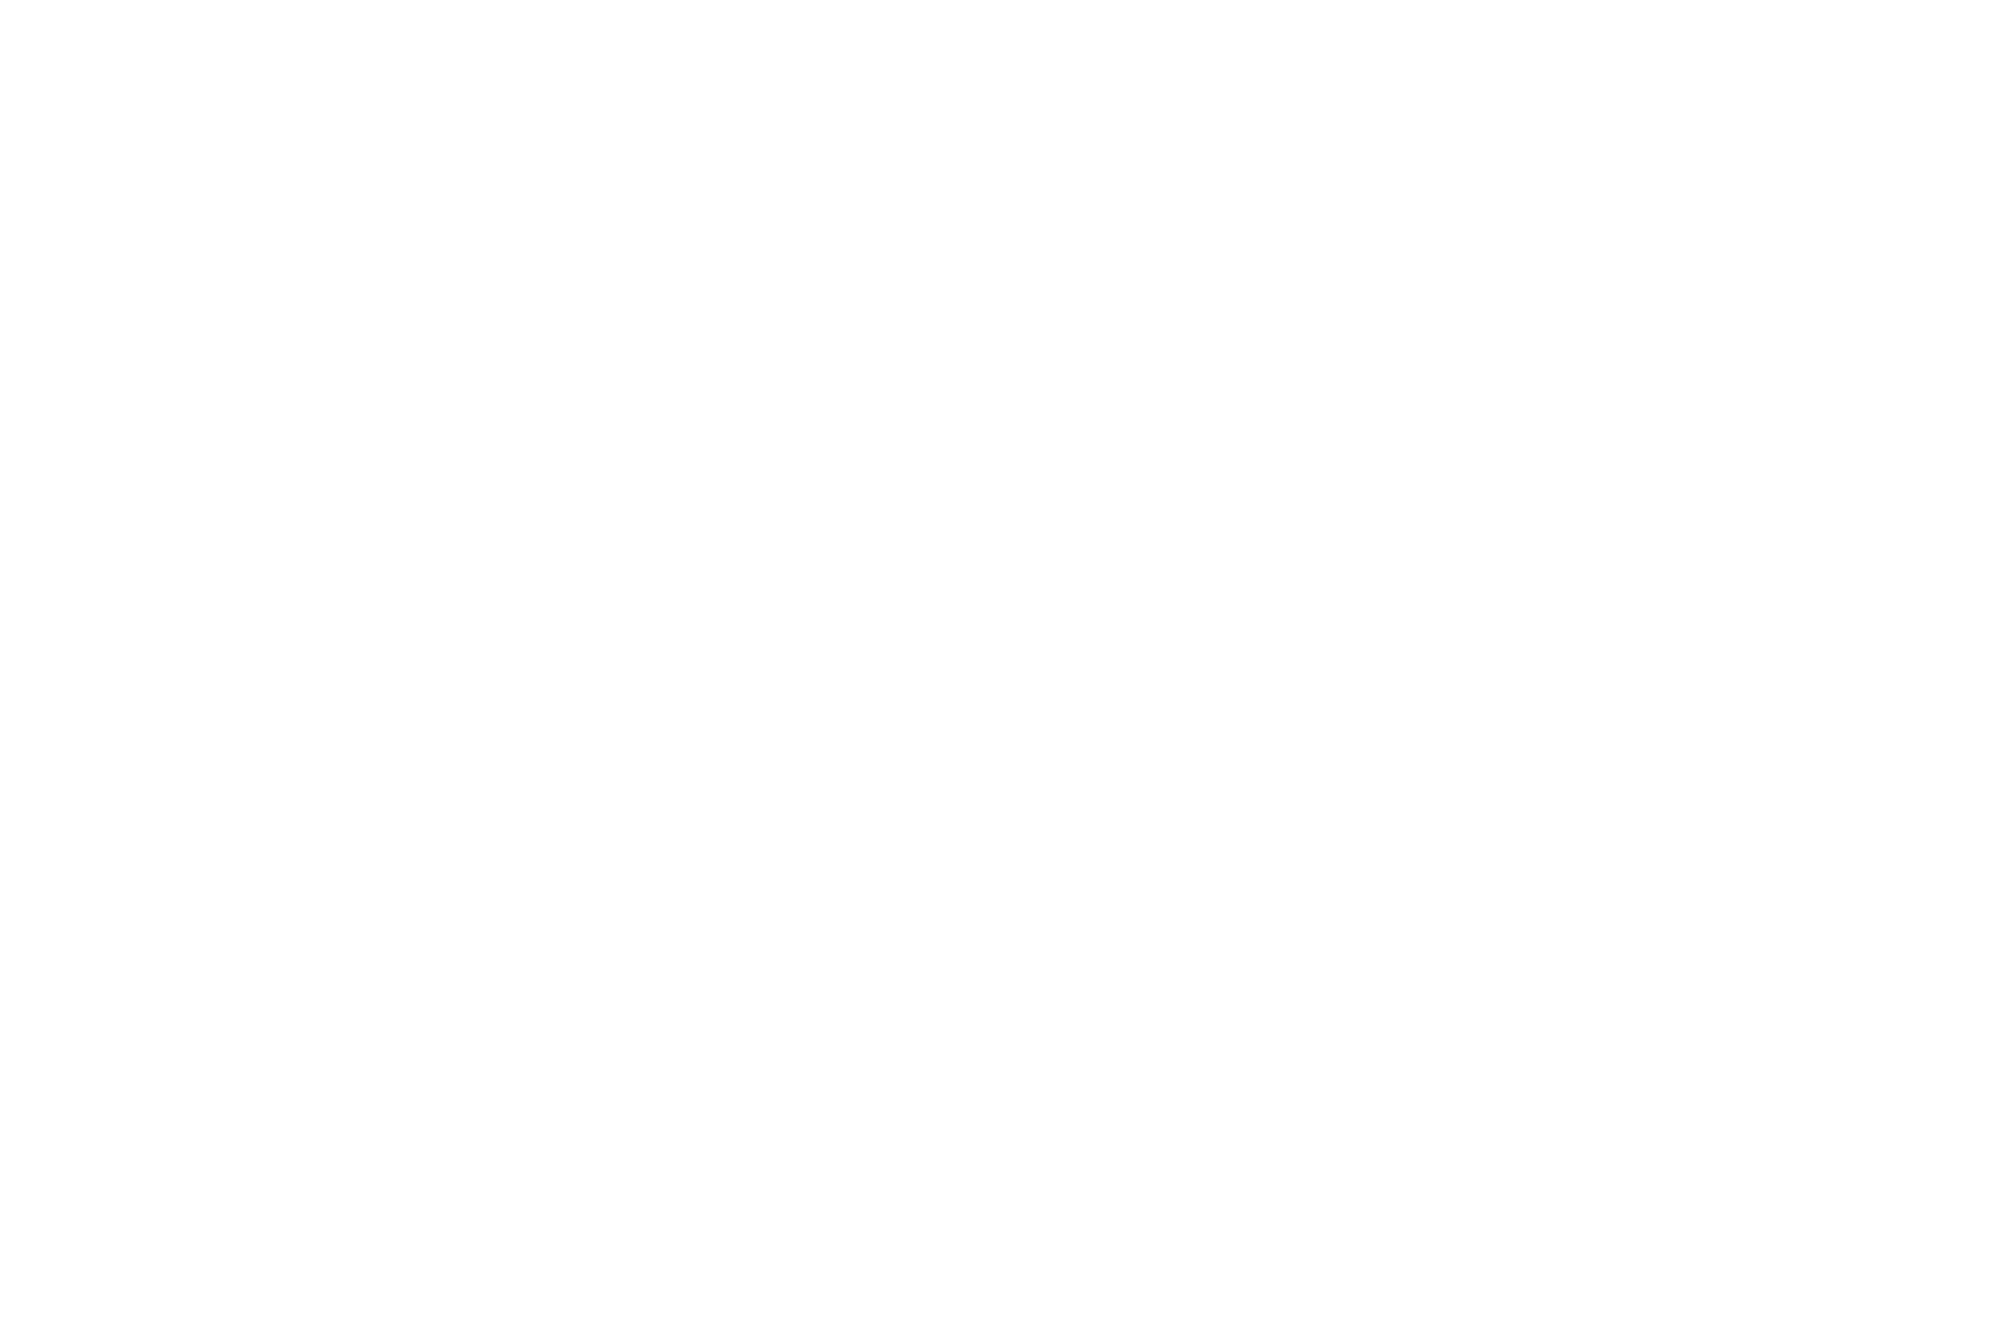 Coldwell Banker River Valley Logo